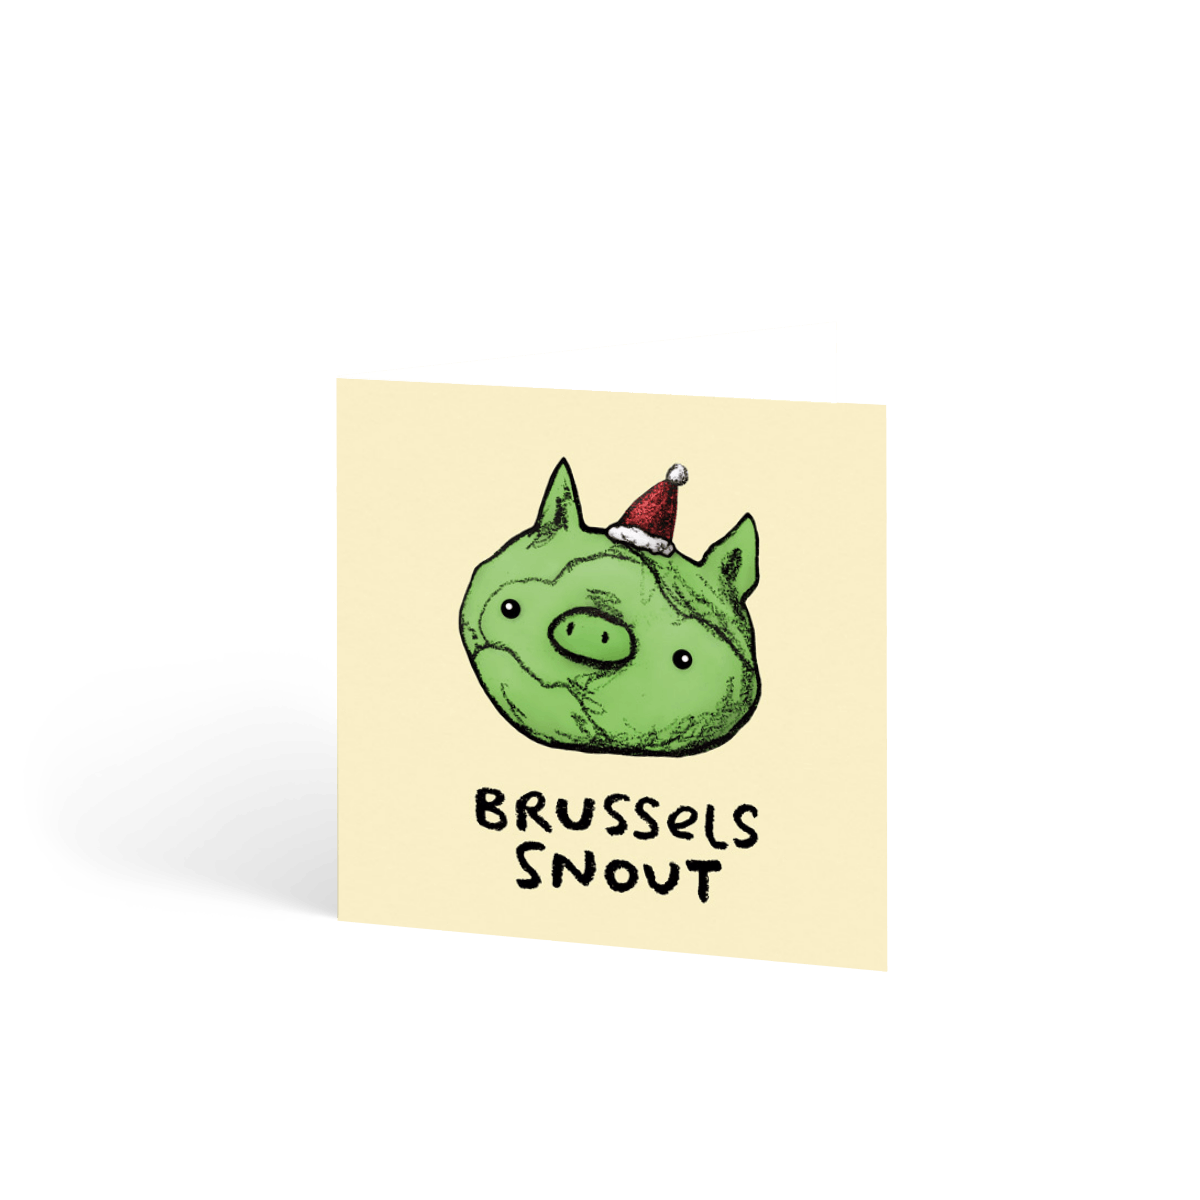 Https%3a%2f%2fwww.papier.com%2fproduct image%2f14552%2f16%2fbrussels snout 3881 front 1480431534.png?ixlib=rb 1.1